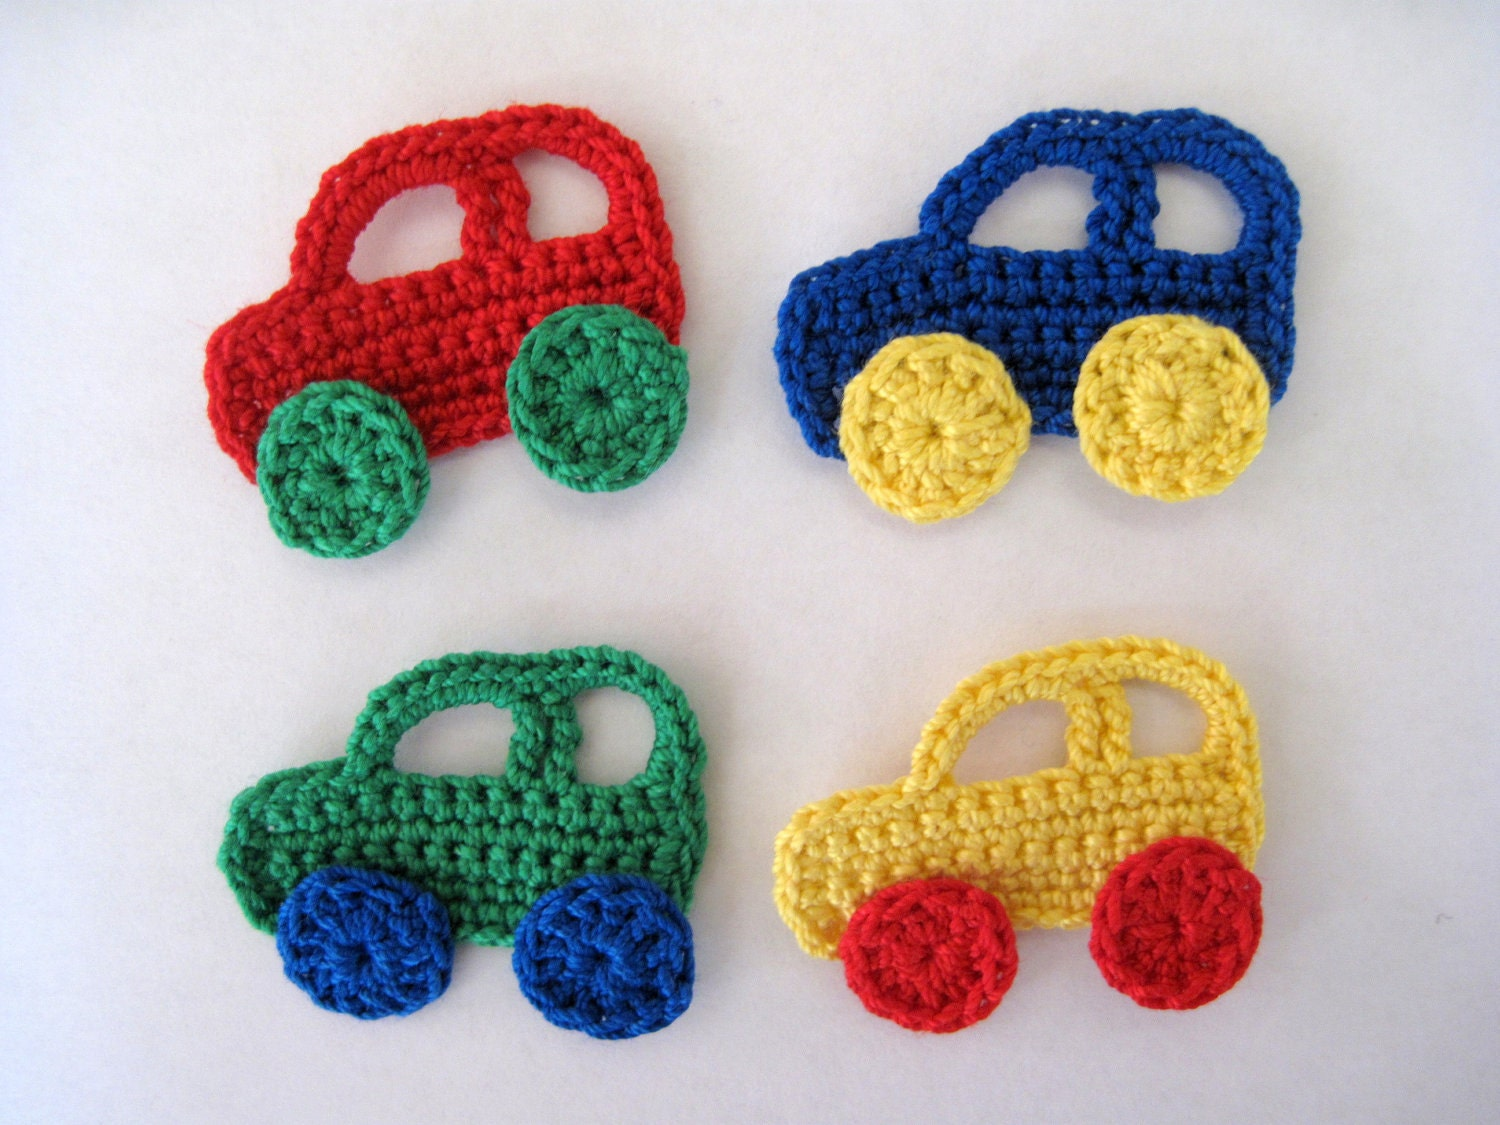 Crochet Applique : Handmade Crochet Car Appliques by GoldenLucyCrafts on Etsy